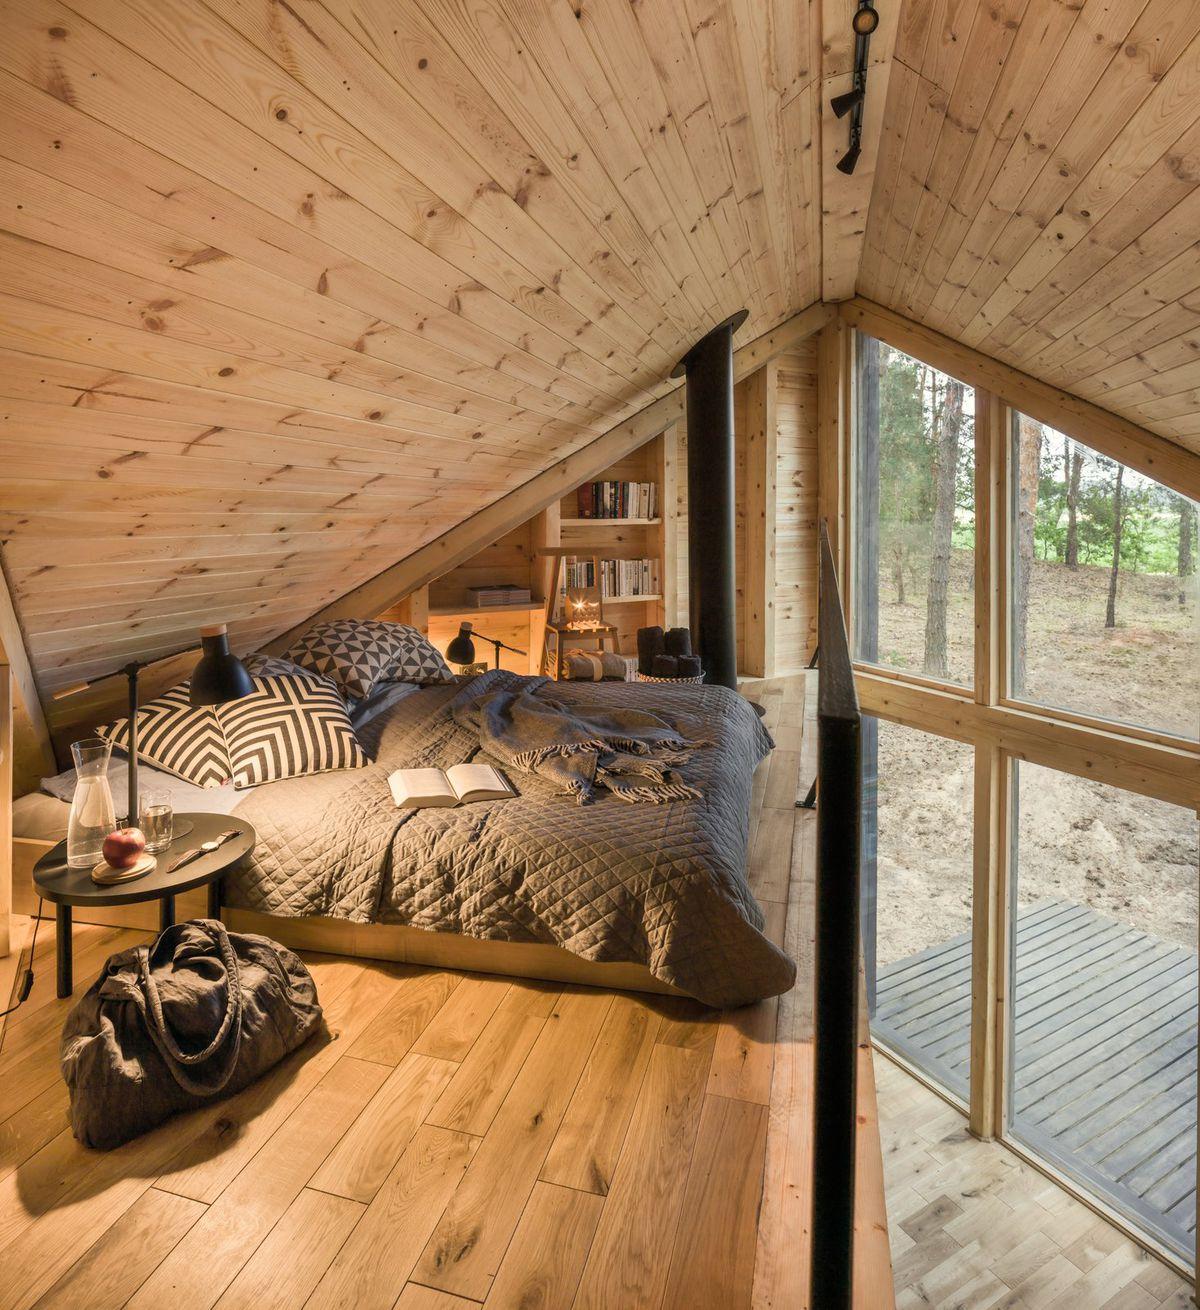 Bed tucked into lofted corner.